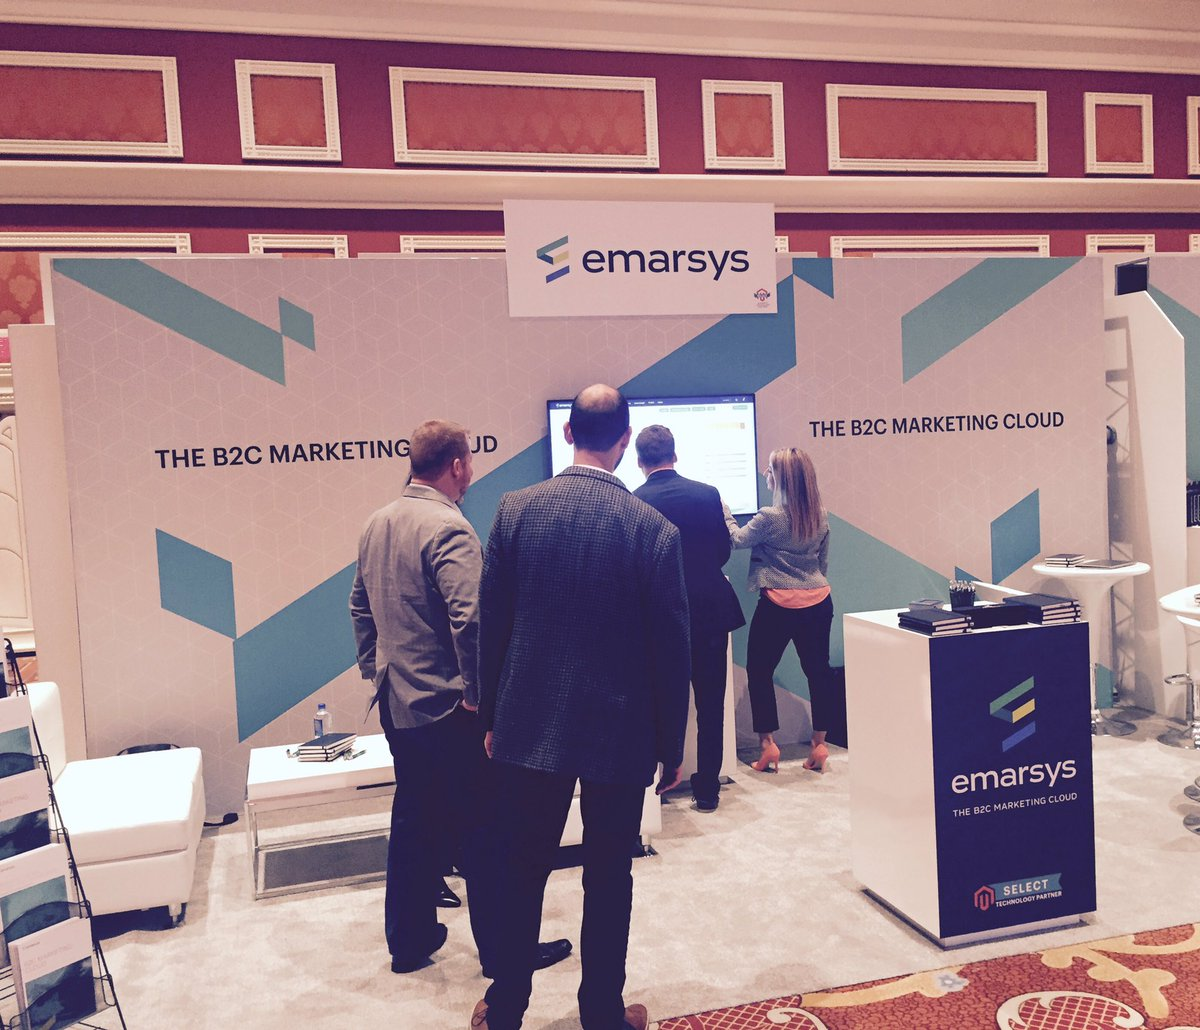 dakotalbrock: Come see @Emarsys at #Magentoimagine booth #221 #empoweringmarketers https://t.co/UrbzSD4FQt